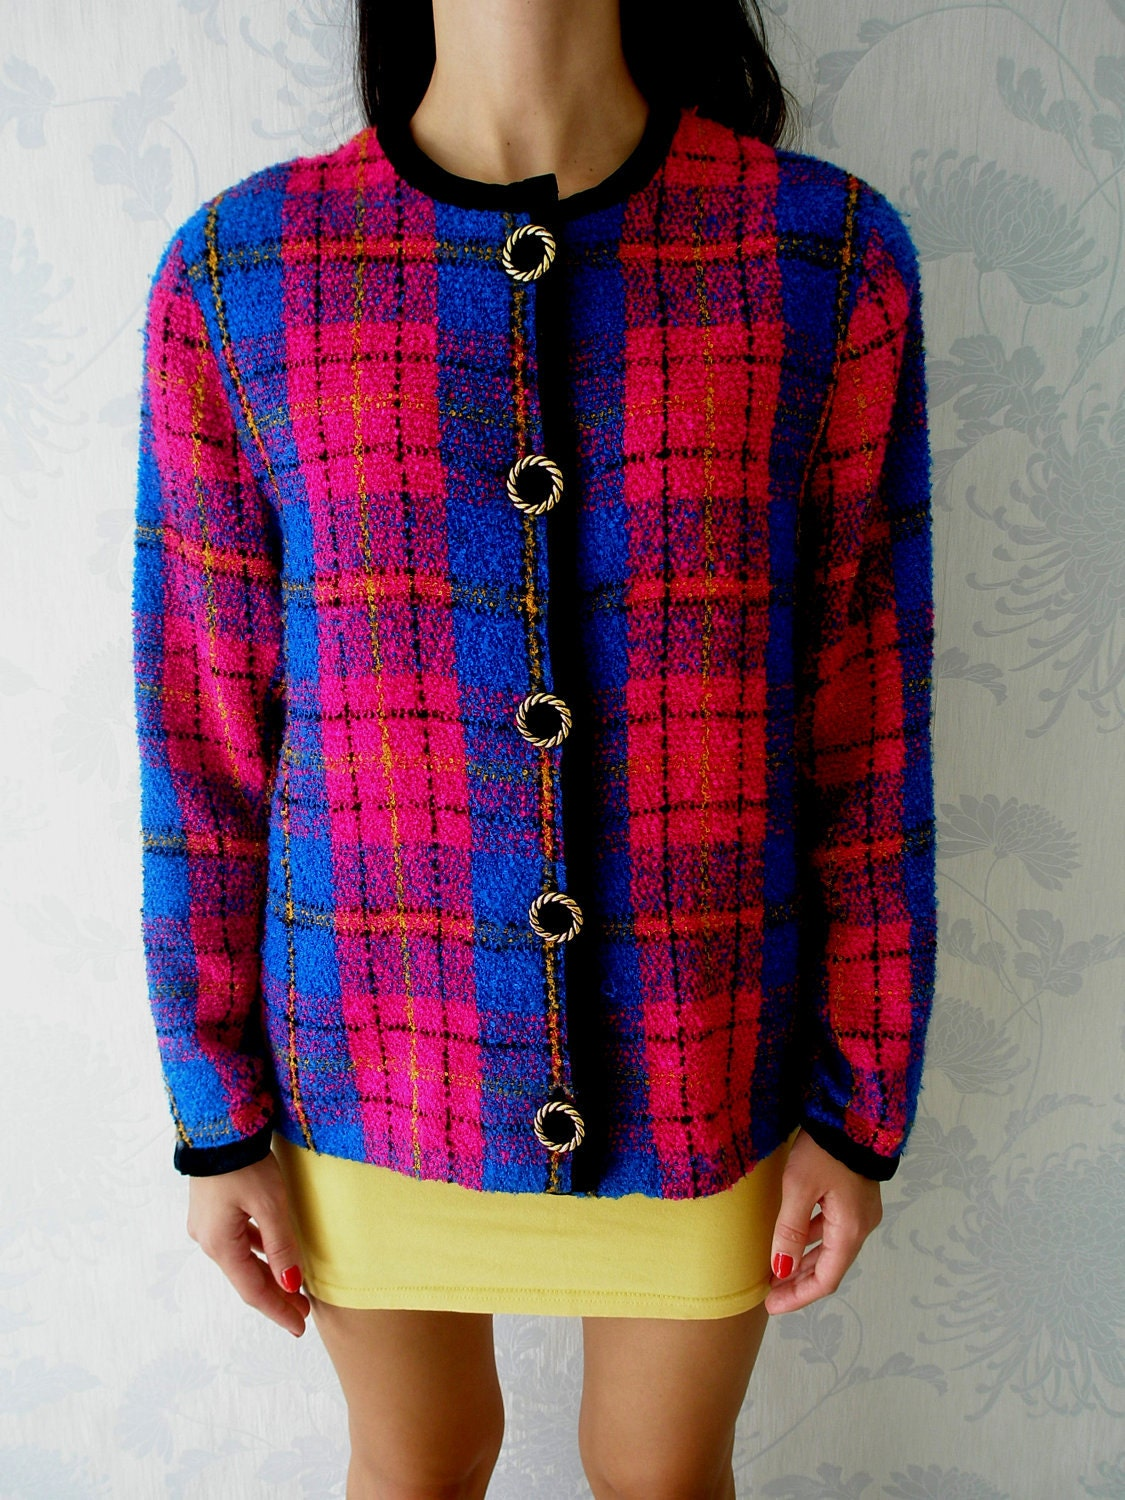 Tartan Plaid Jacket Classic Multi Colored Vintage 80s